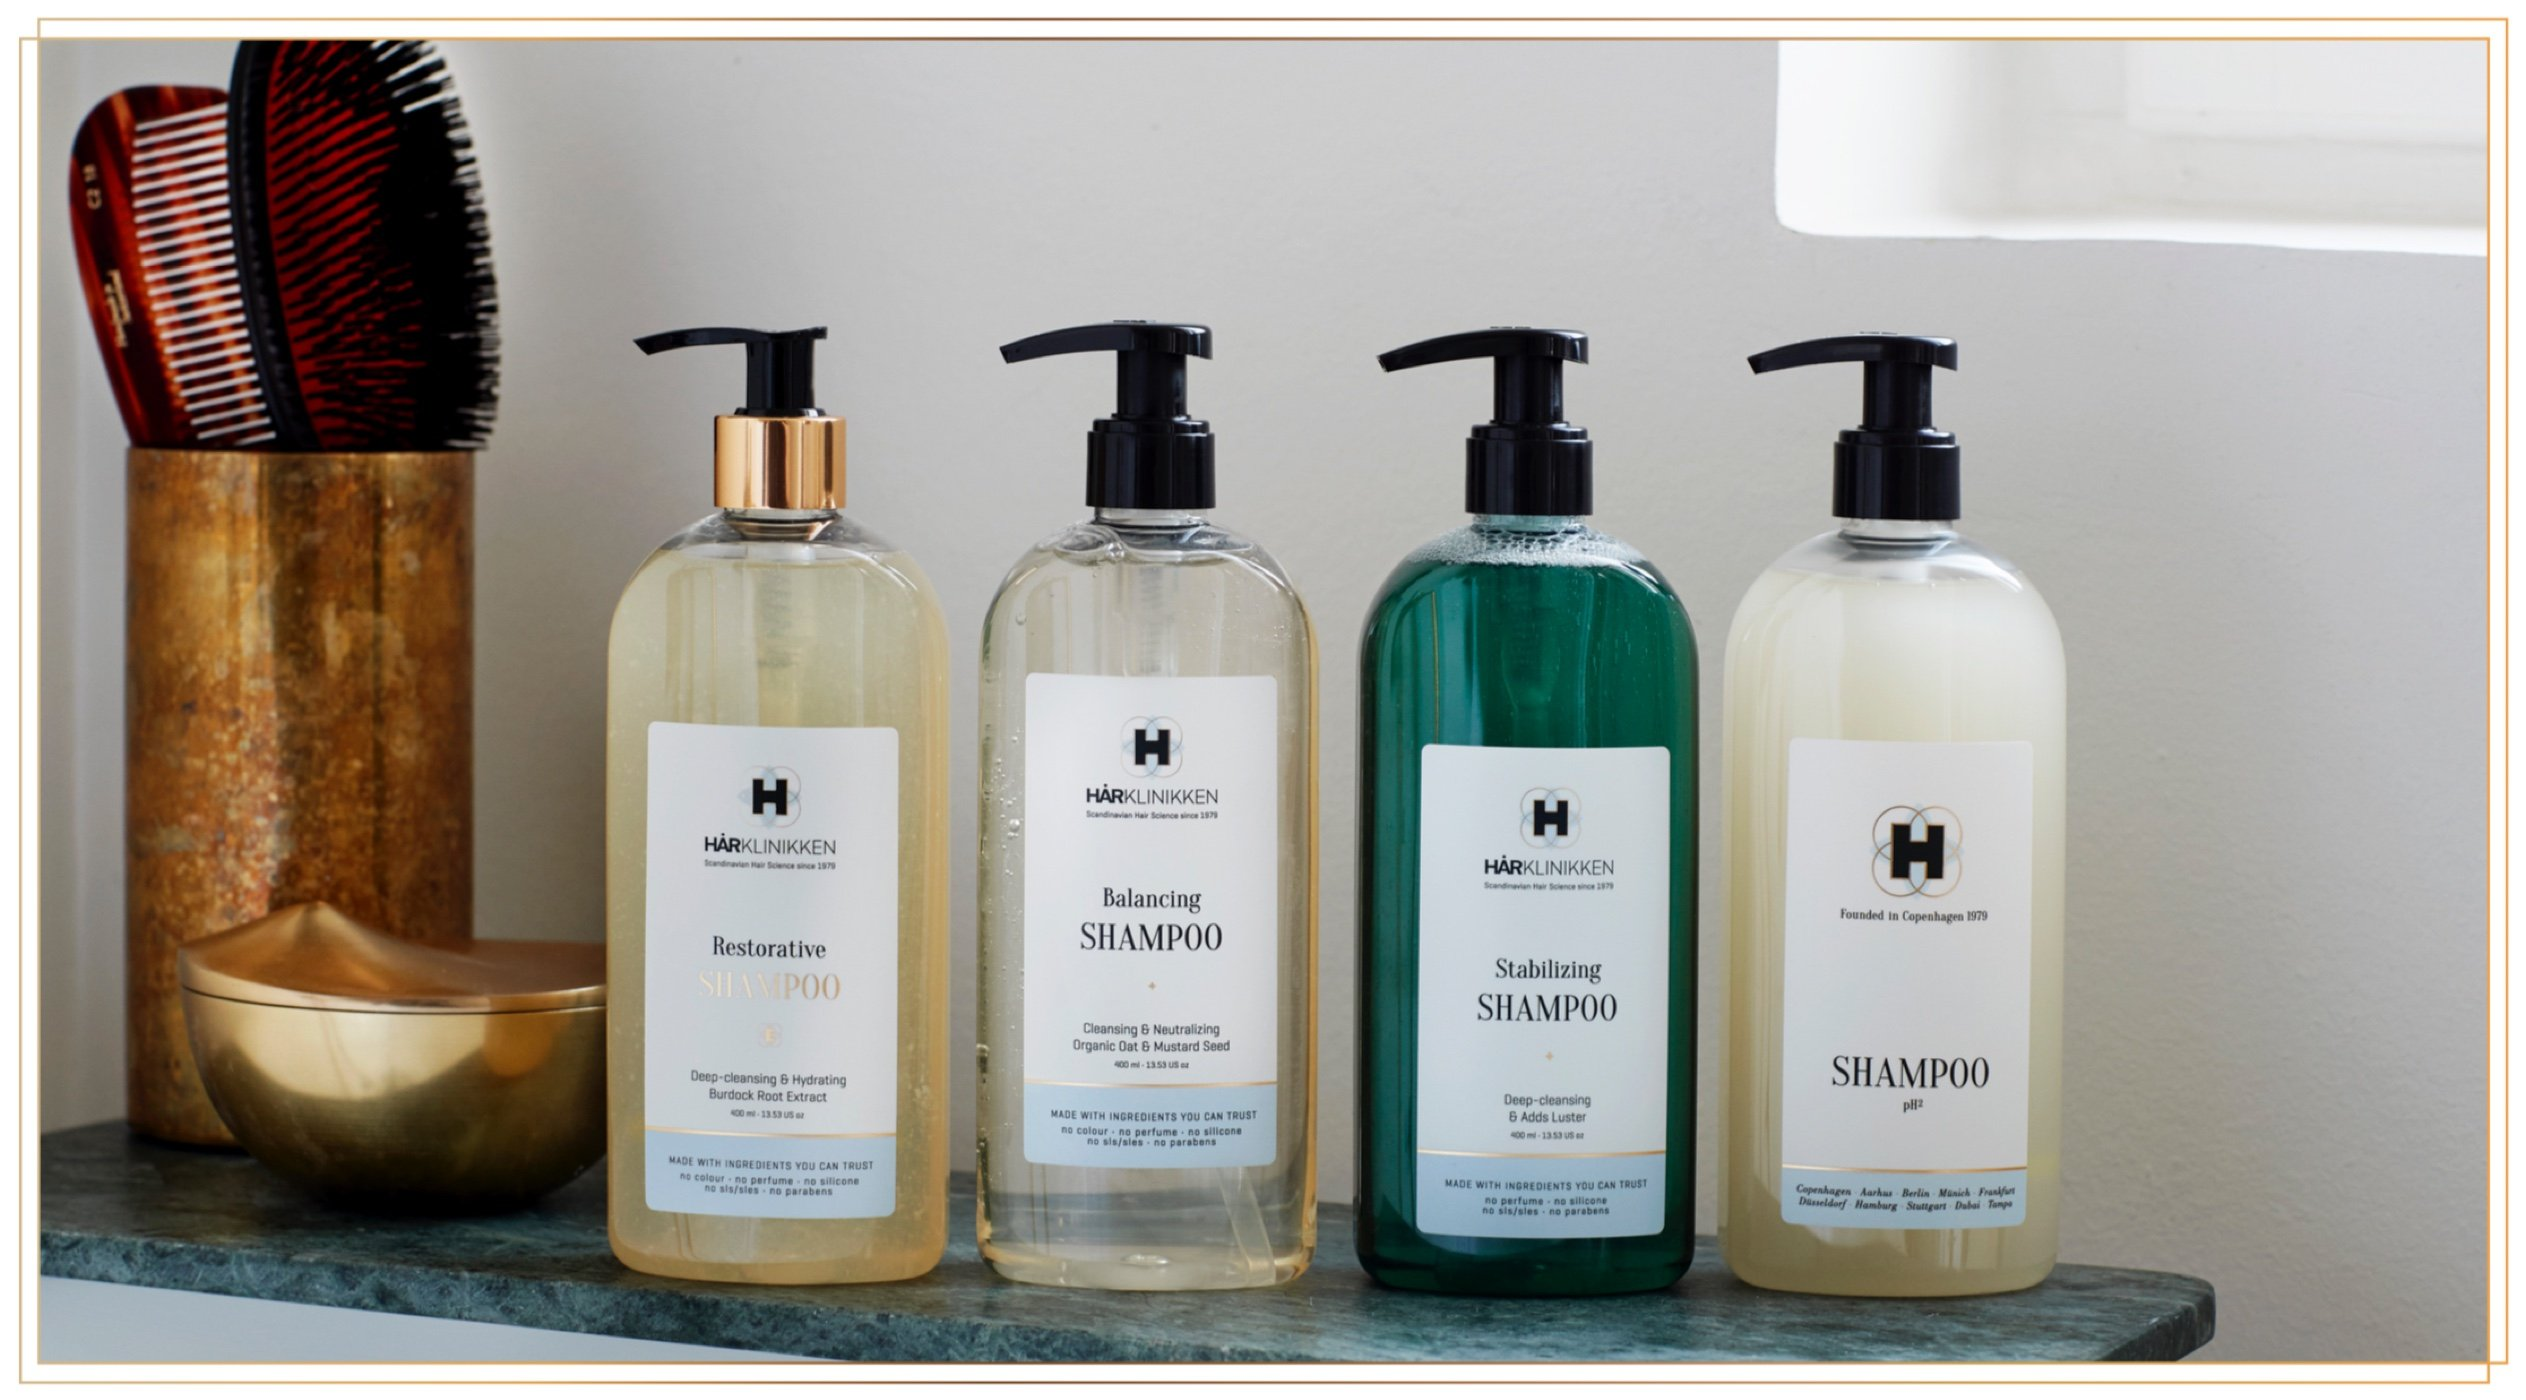 Harklinikken Advanced Cleansing & Treatment Set | 8.45 Oz. Balancing Shampoo & 8.45 Oz Restorative Shampoo | When washing daily: Alternate Product - For All Hair Types - Natural & Plant-Based by Harklinikken (Image #6)